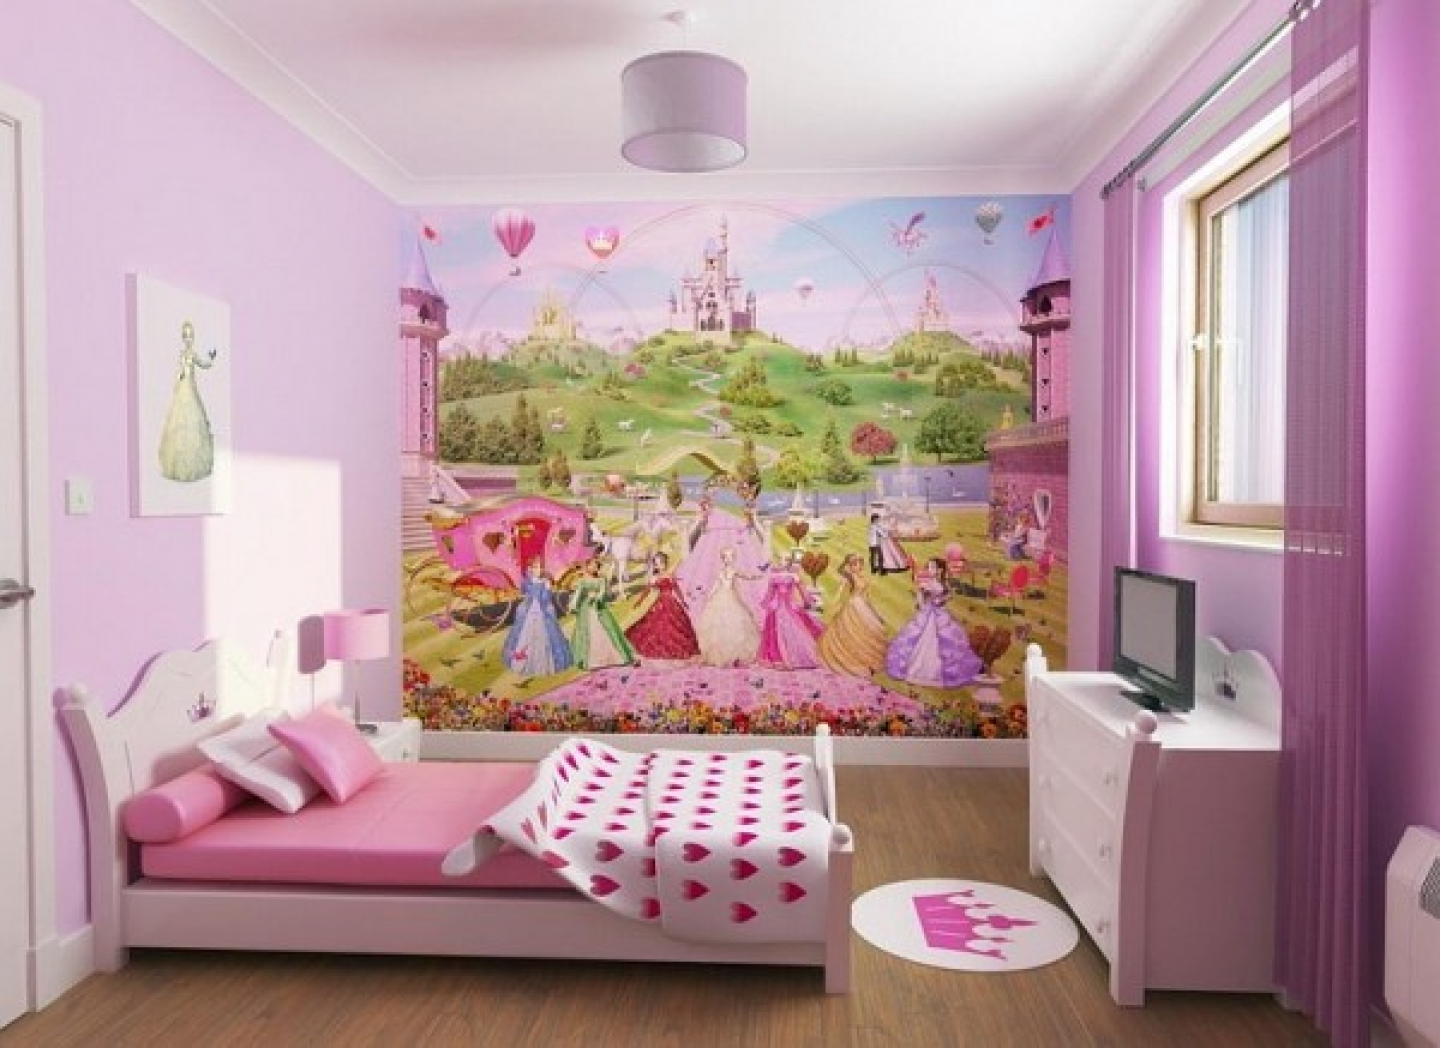 room decorations for girls bedroom, wonderful girl room decorating ideas teenage bedroom ideas for PFUMEFP